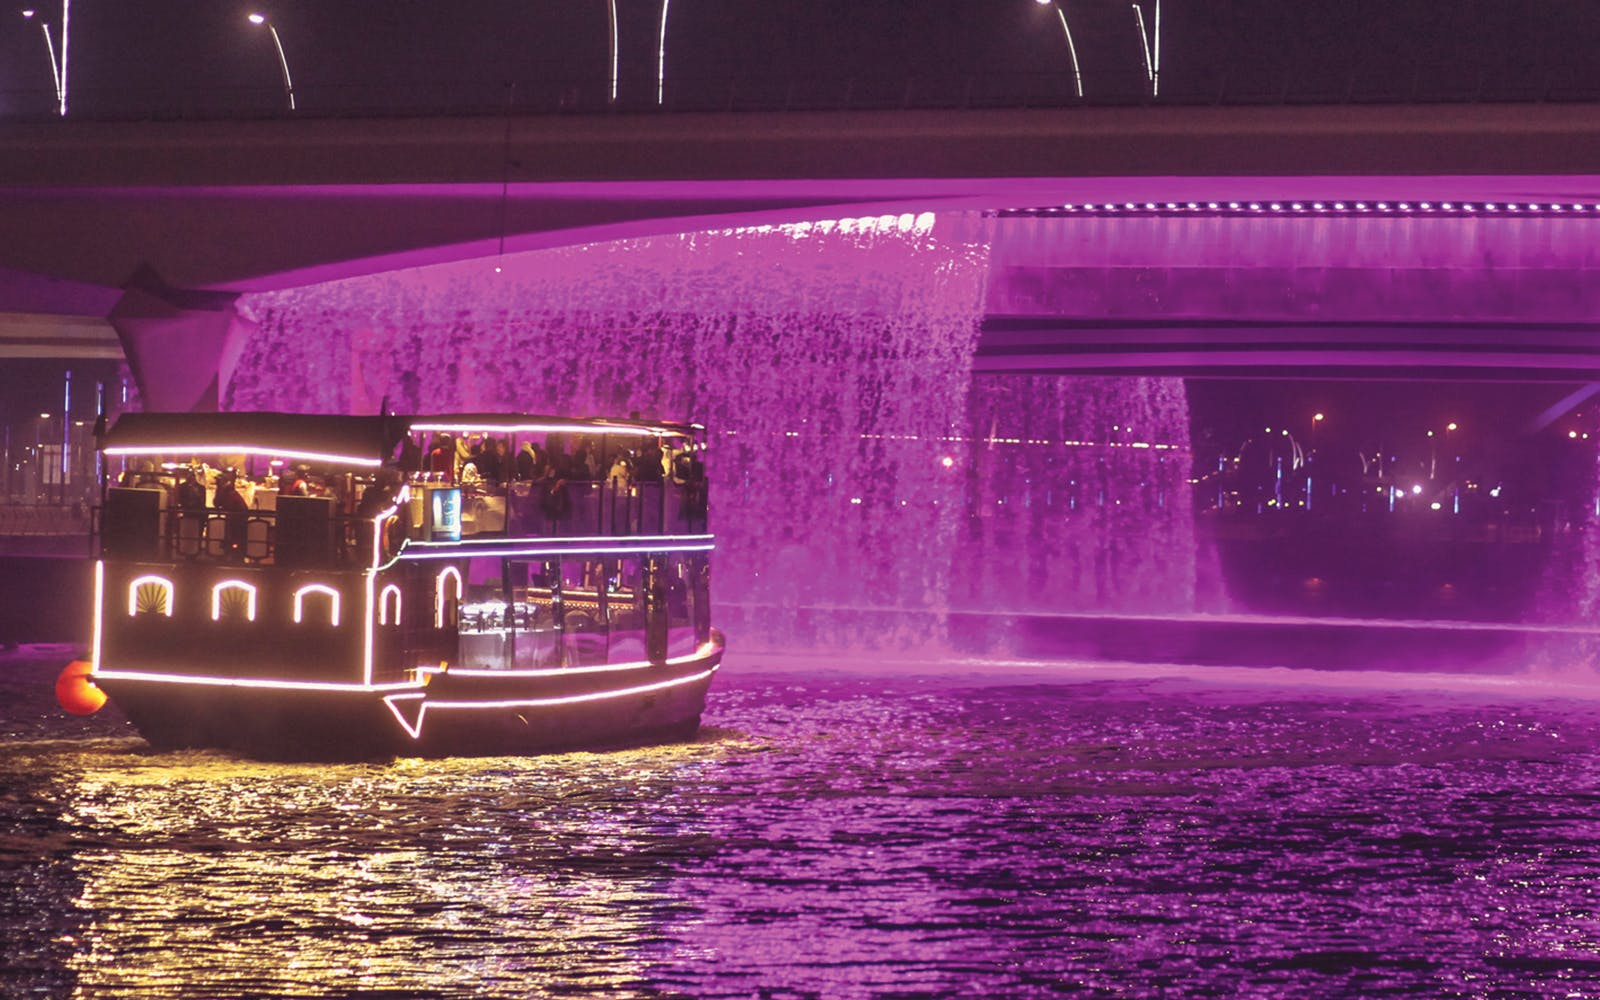 Dubai Water Canal Cruise with Dinner